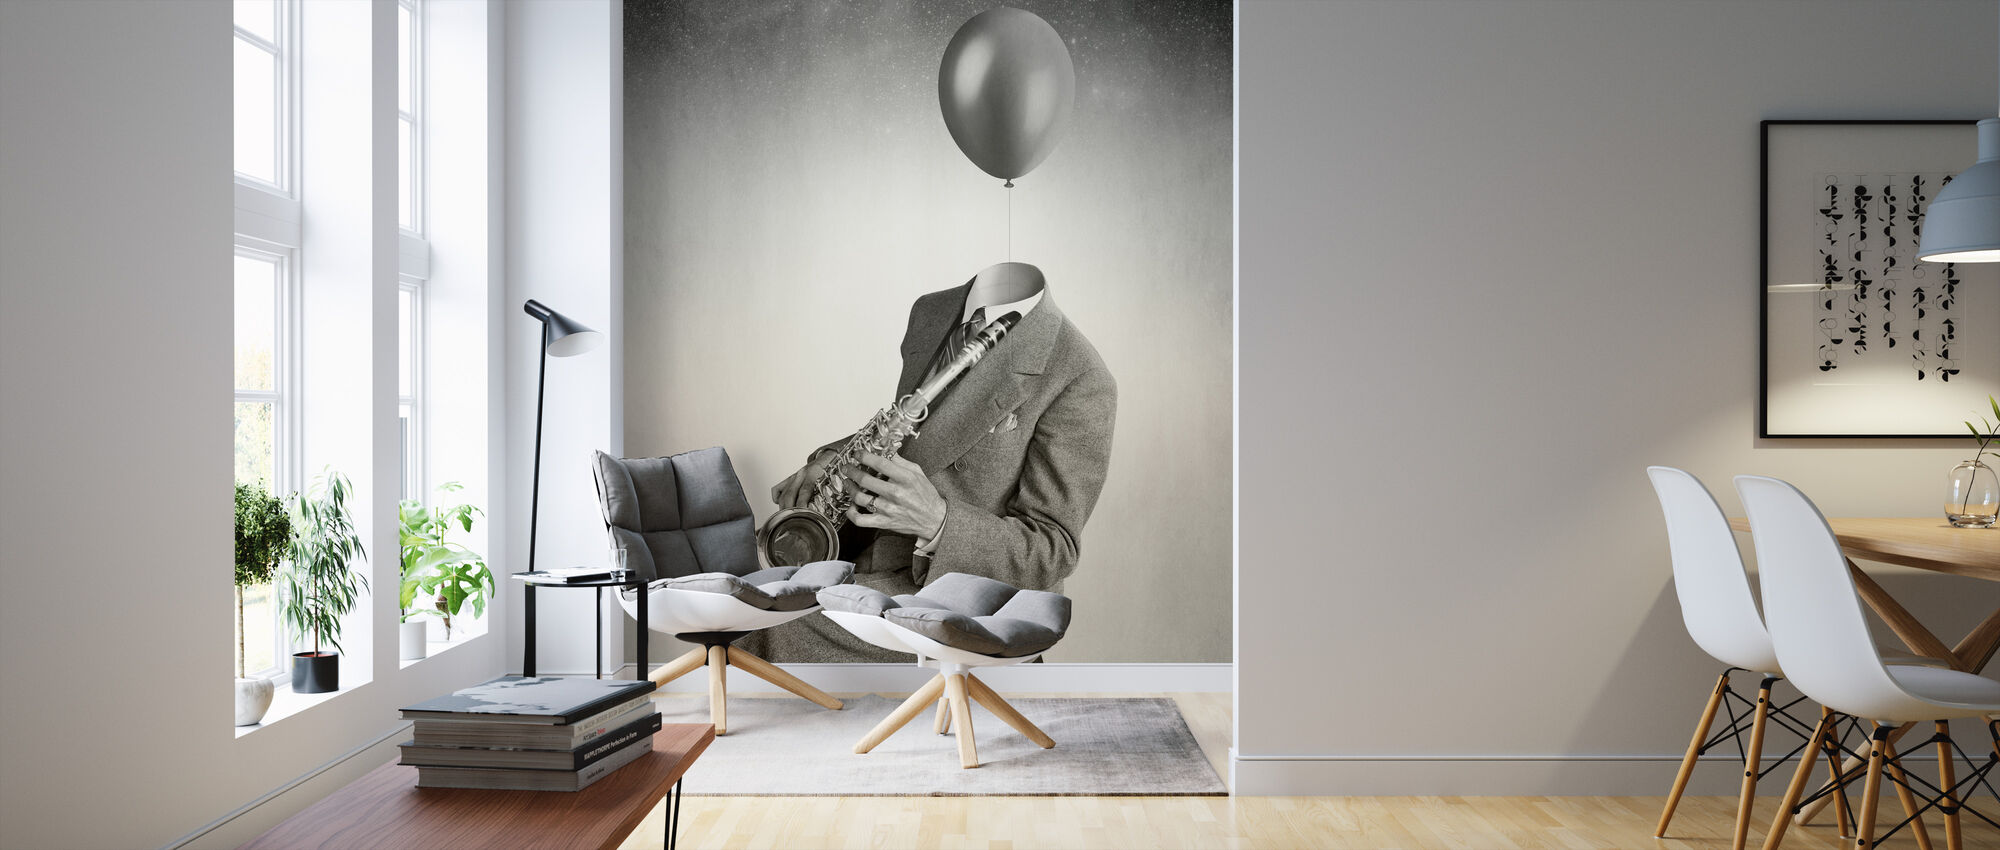 Balloon - Wallpaper - Living Room